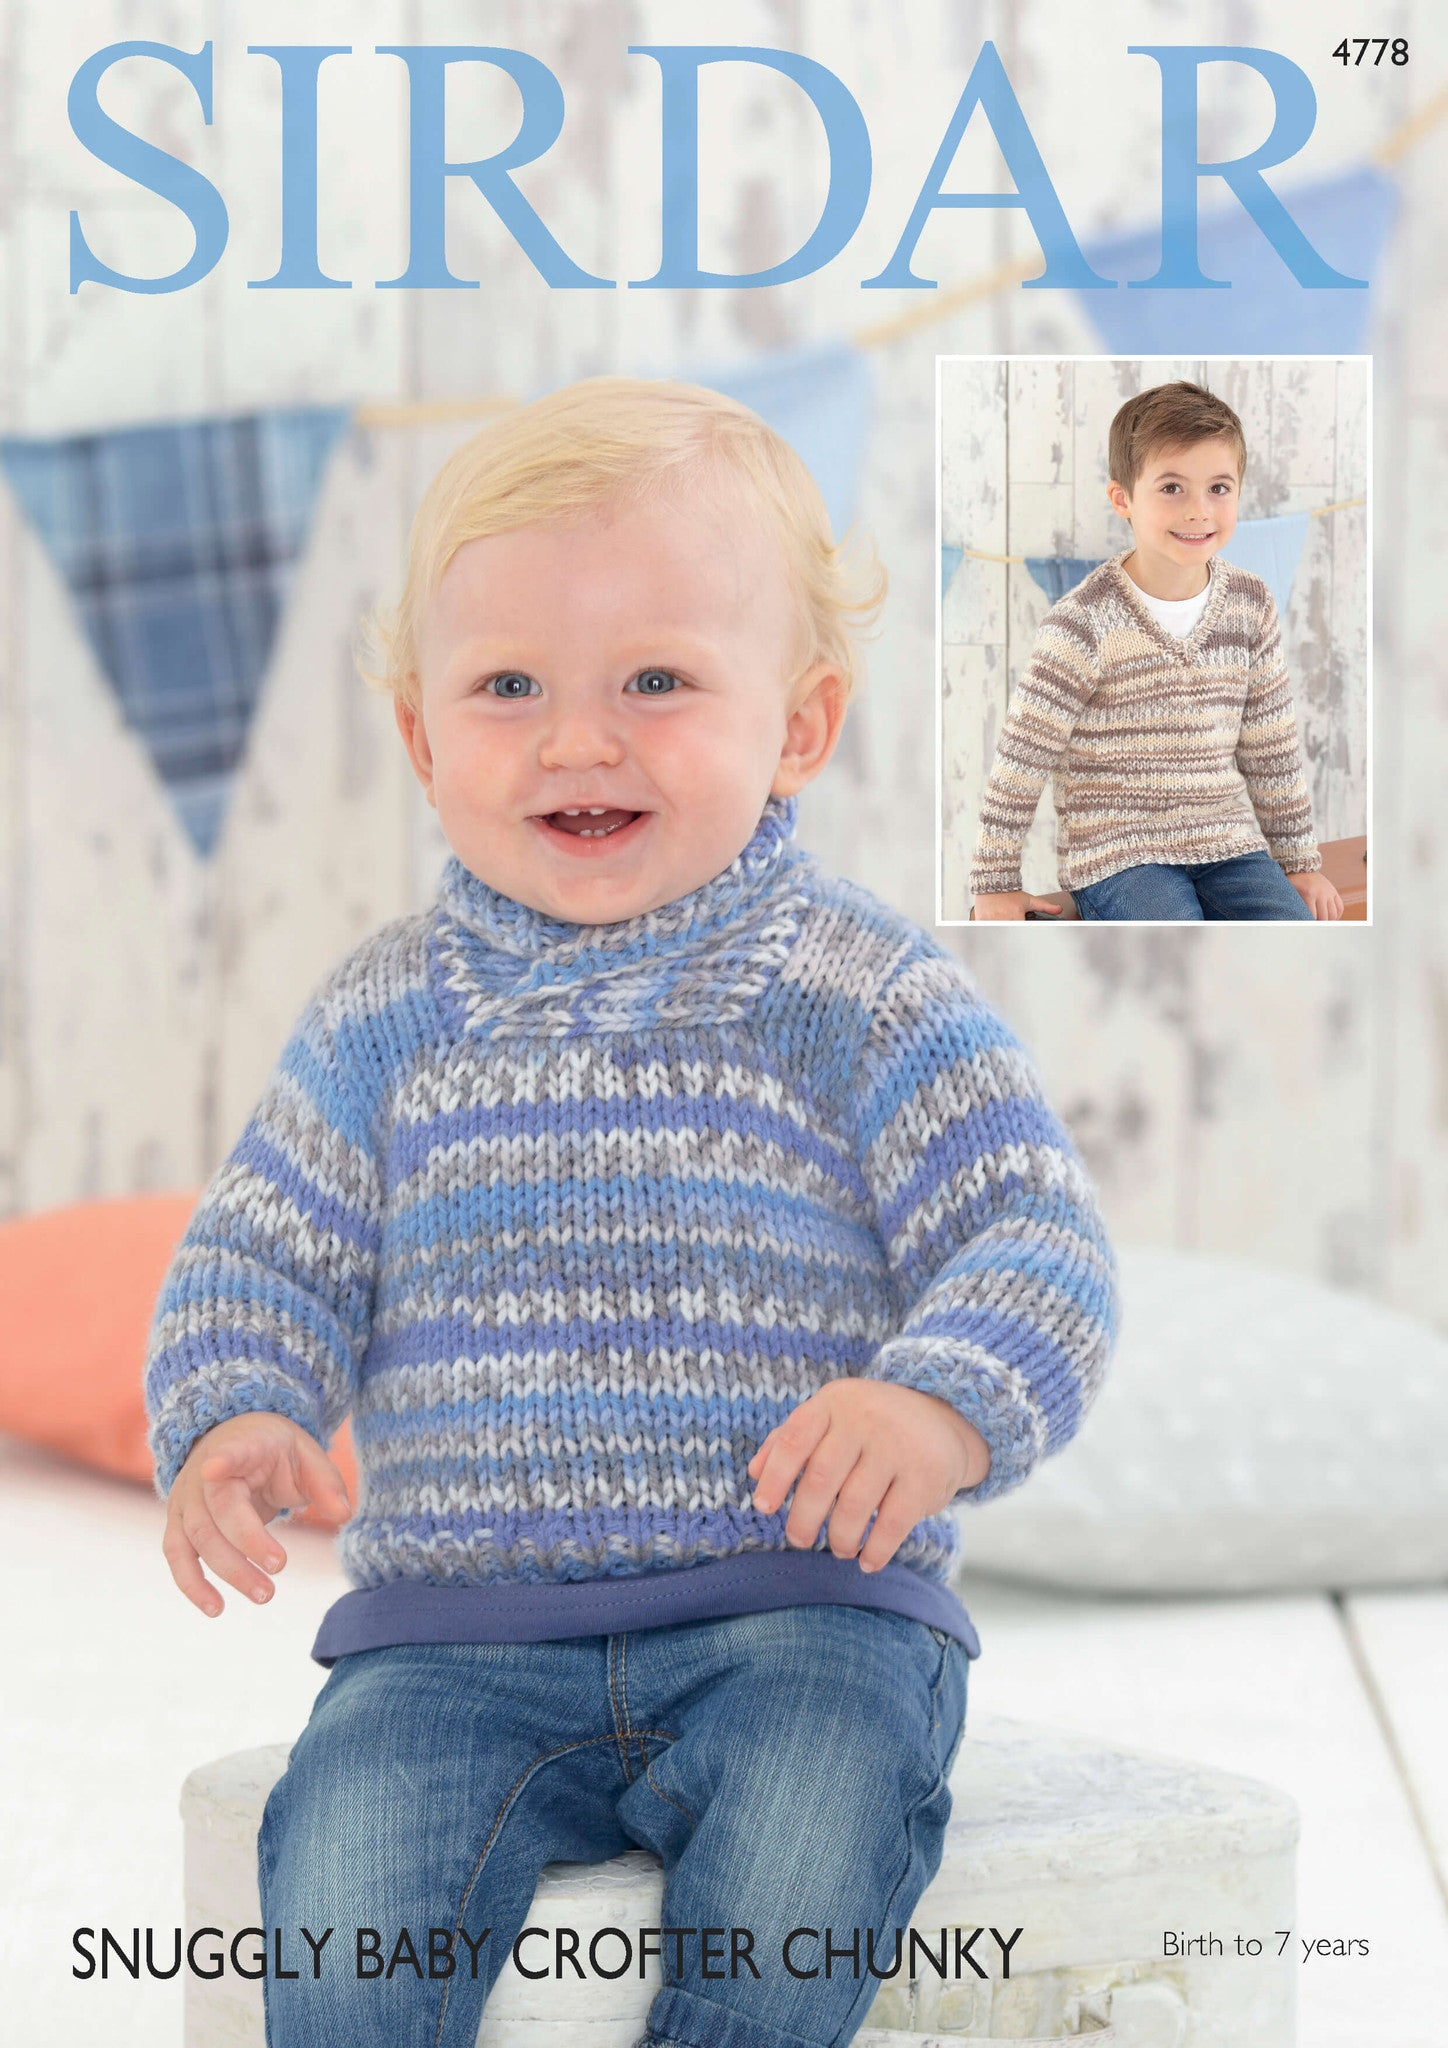 Baby Boy's and Boy's Sweaters in Sirdar Snuggly Baby Crofter Chunky (4778)-Deramores